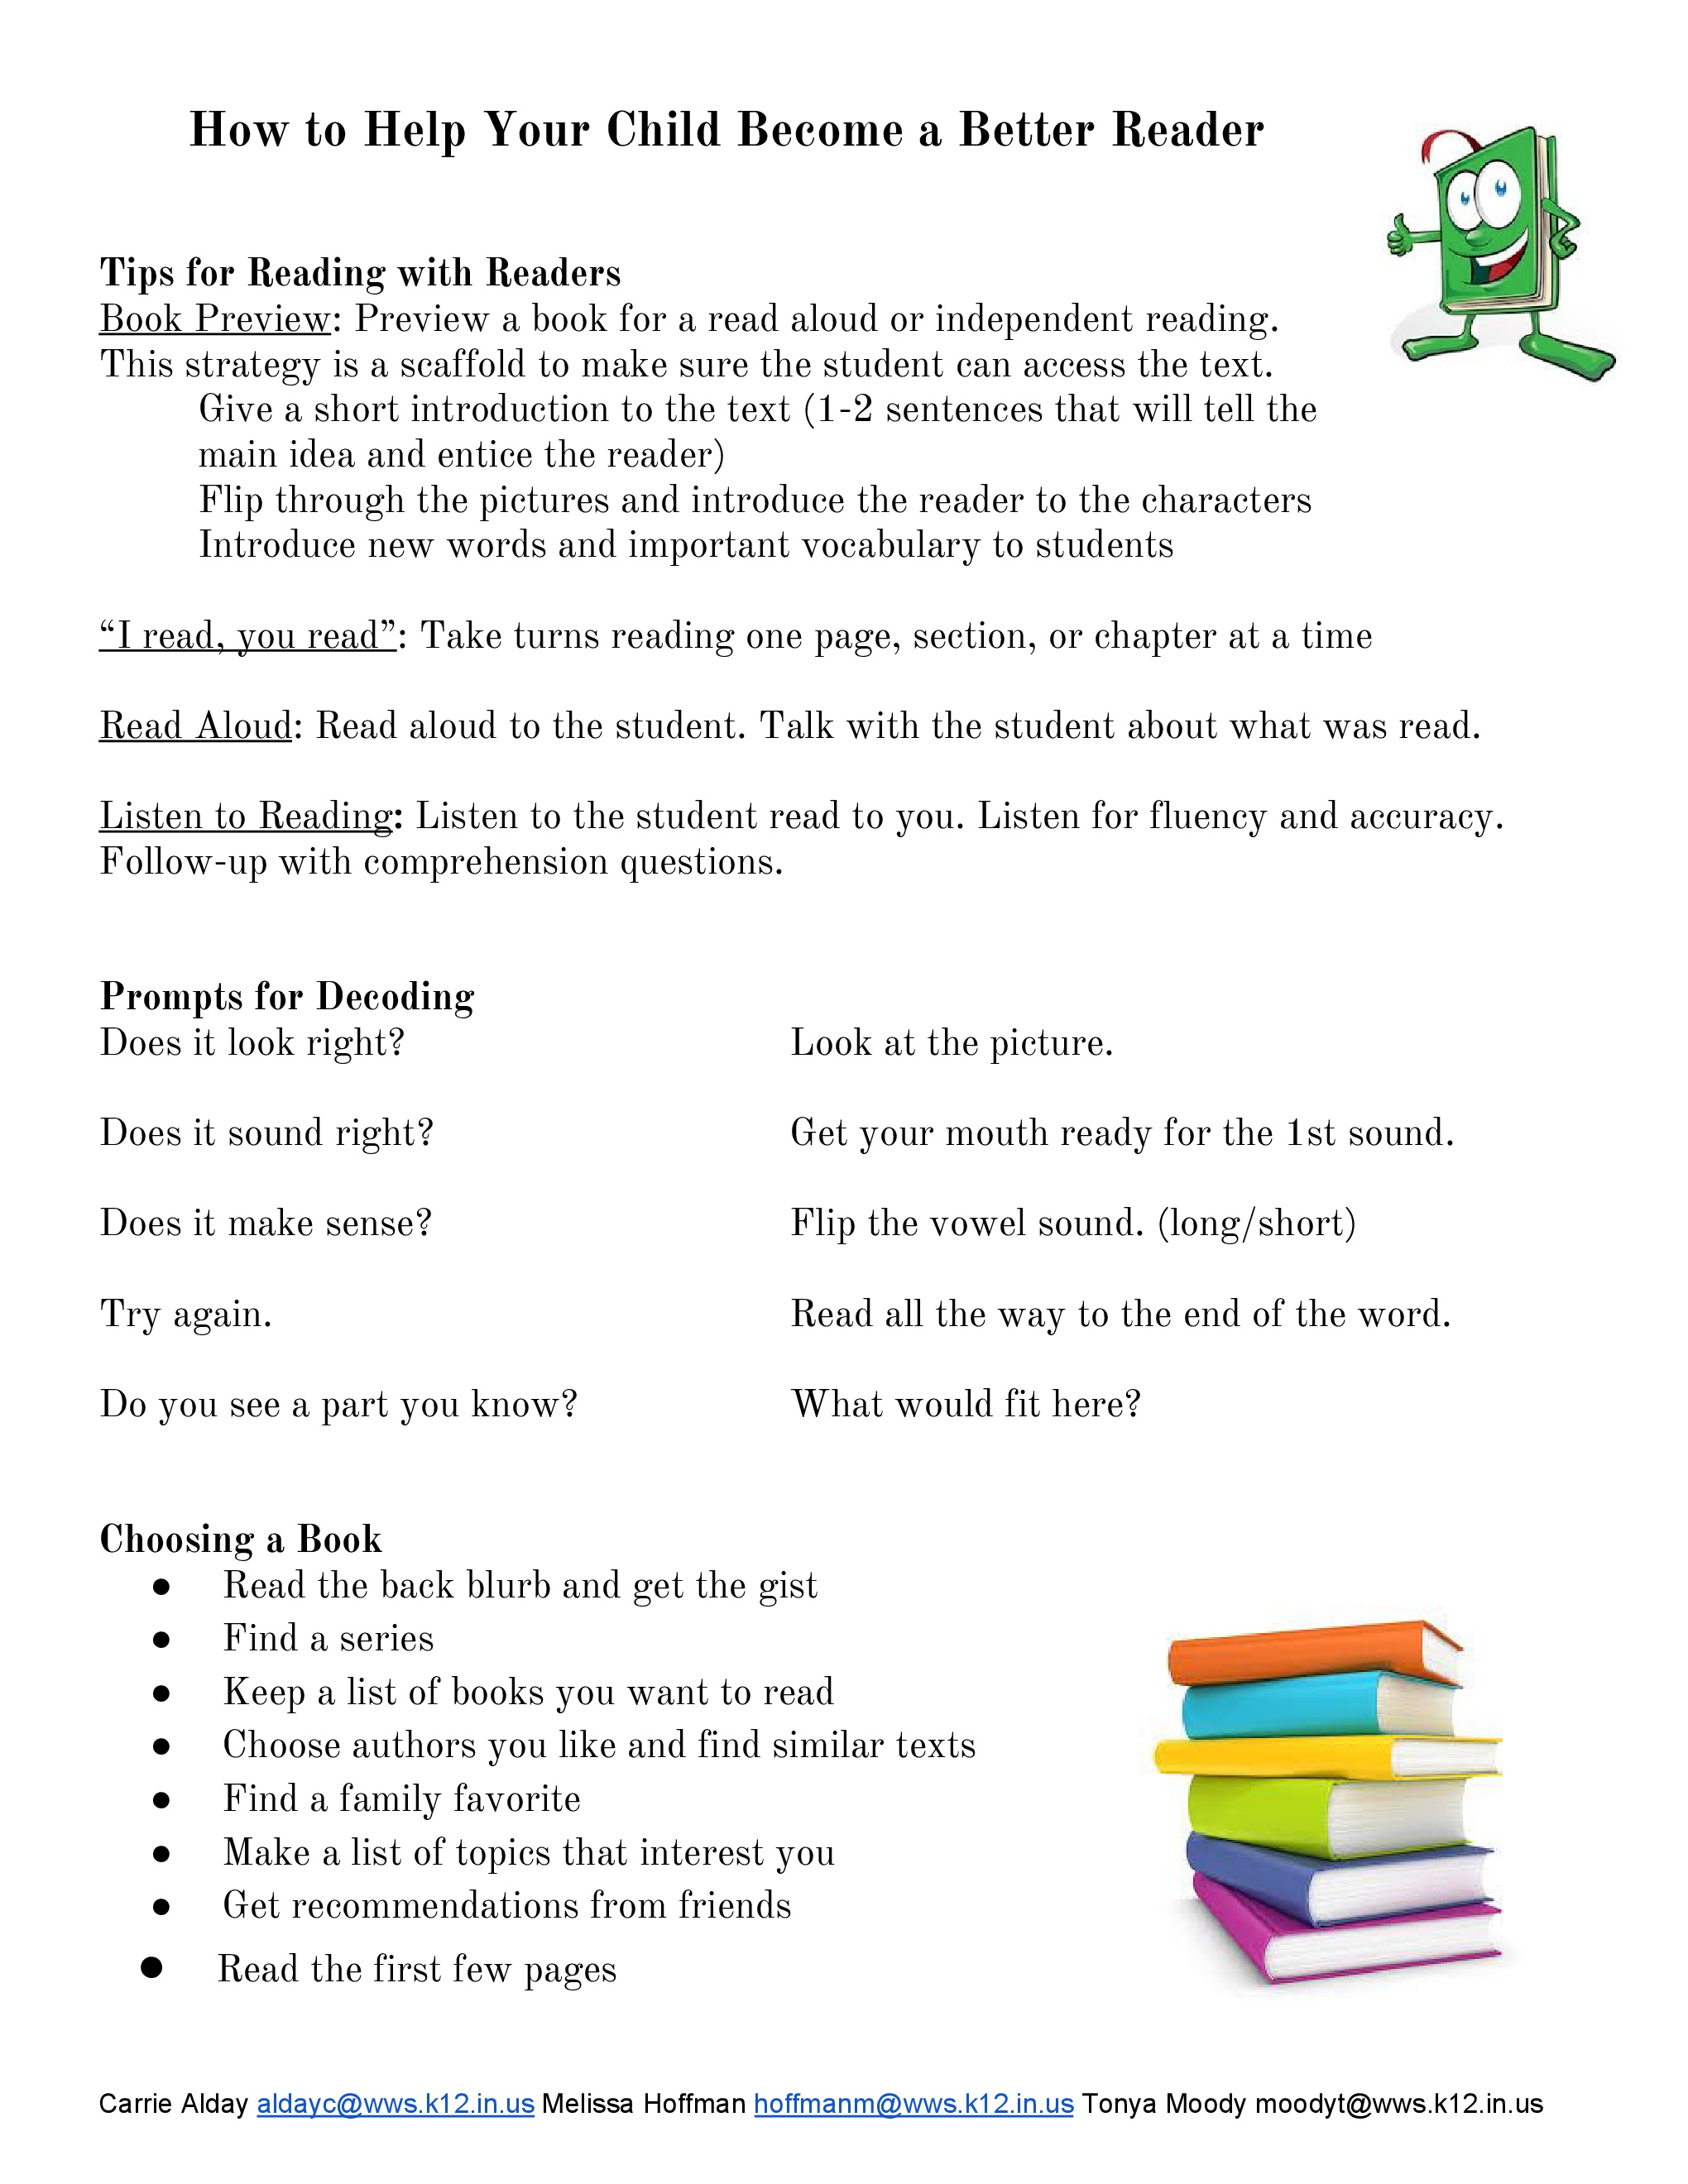 How to Help Your Child Become a Better Reader - WWS Parent